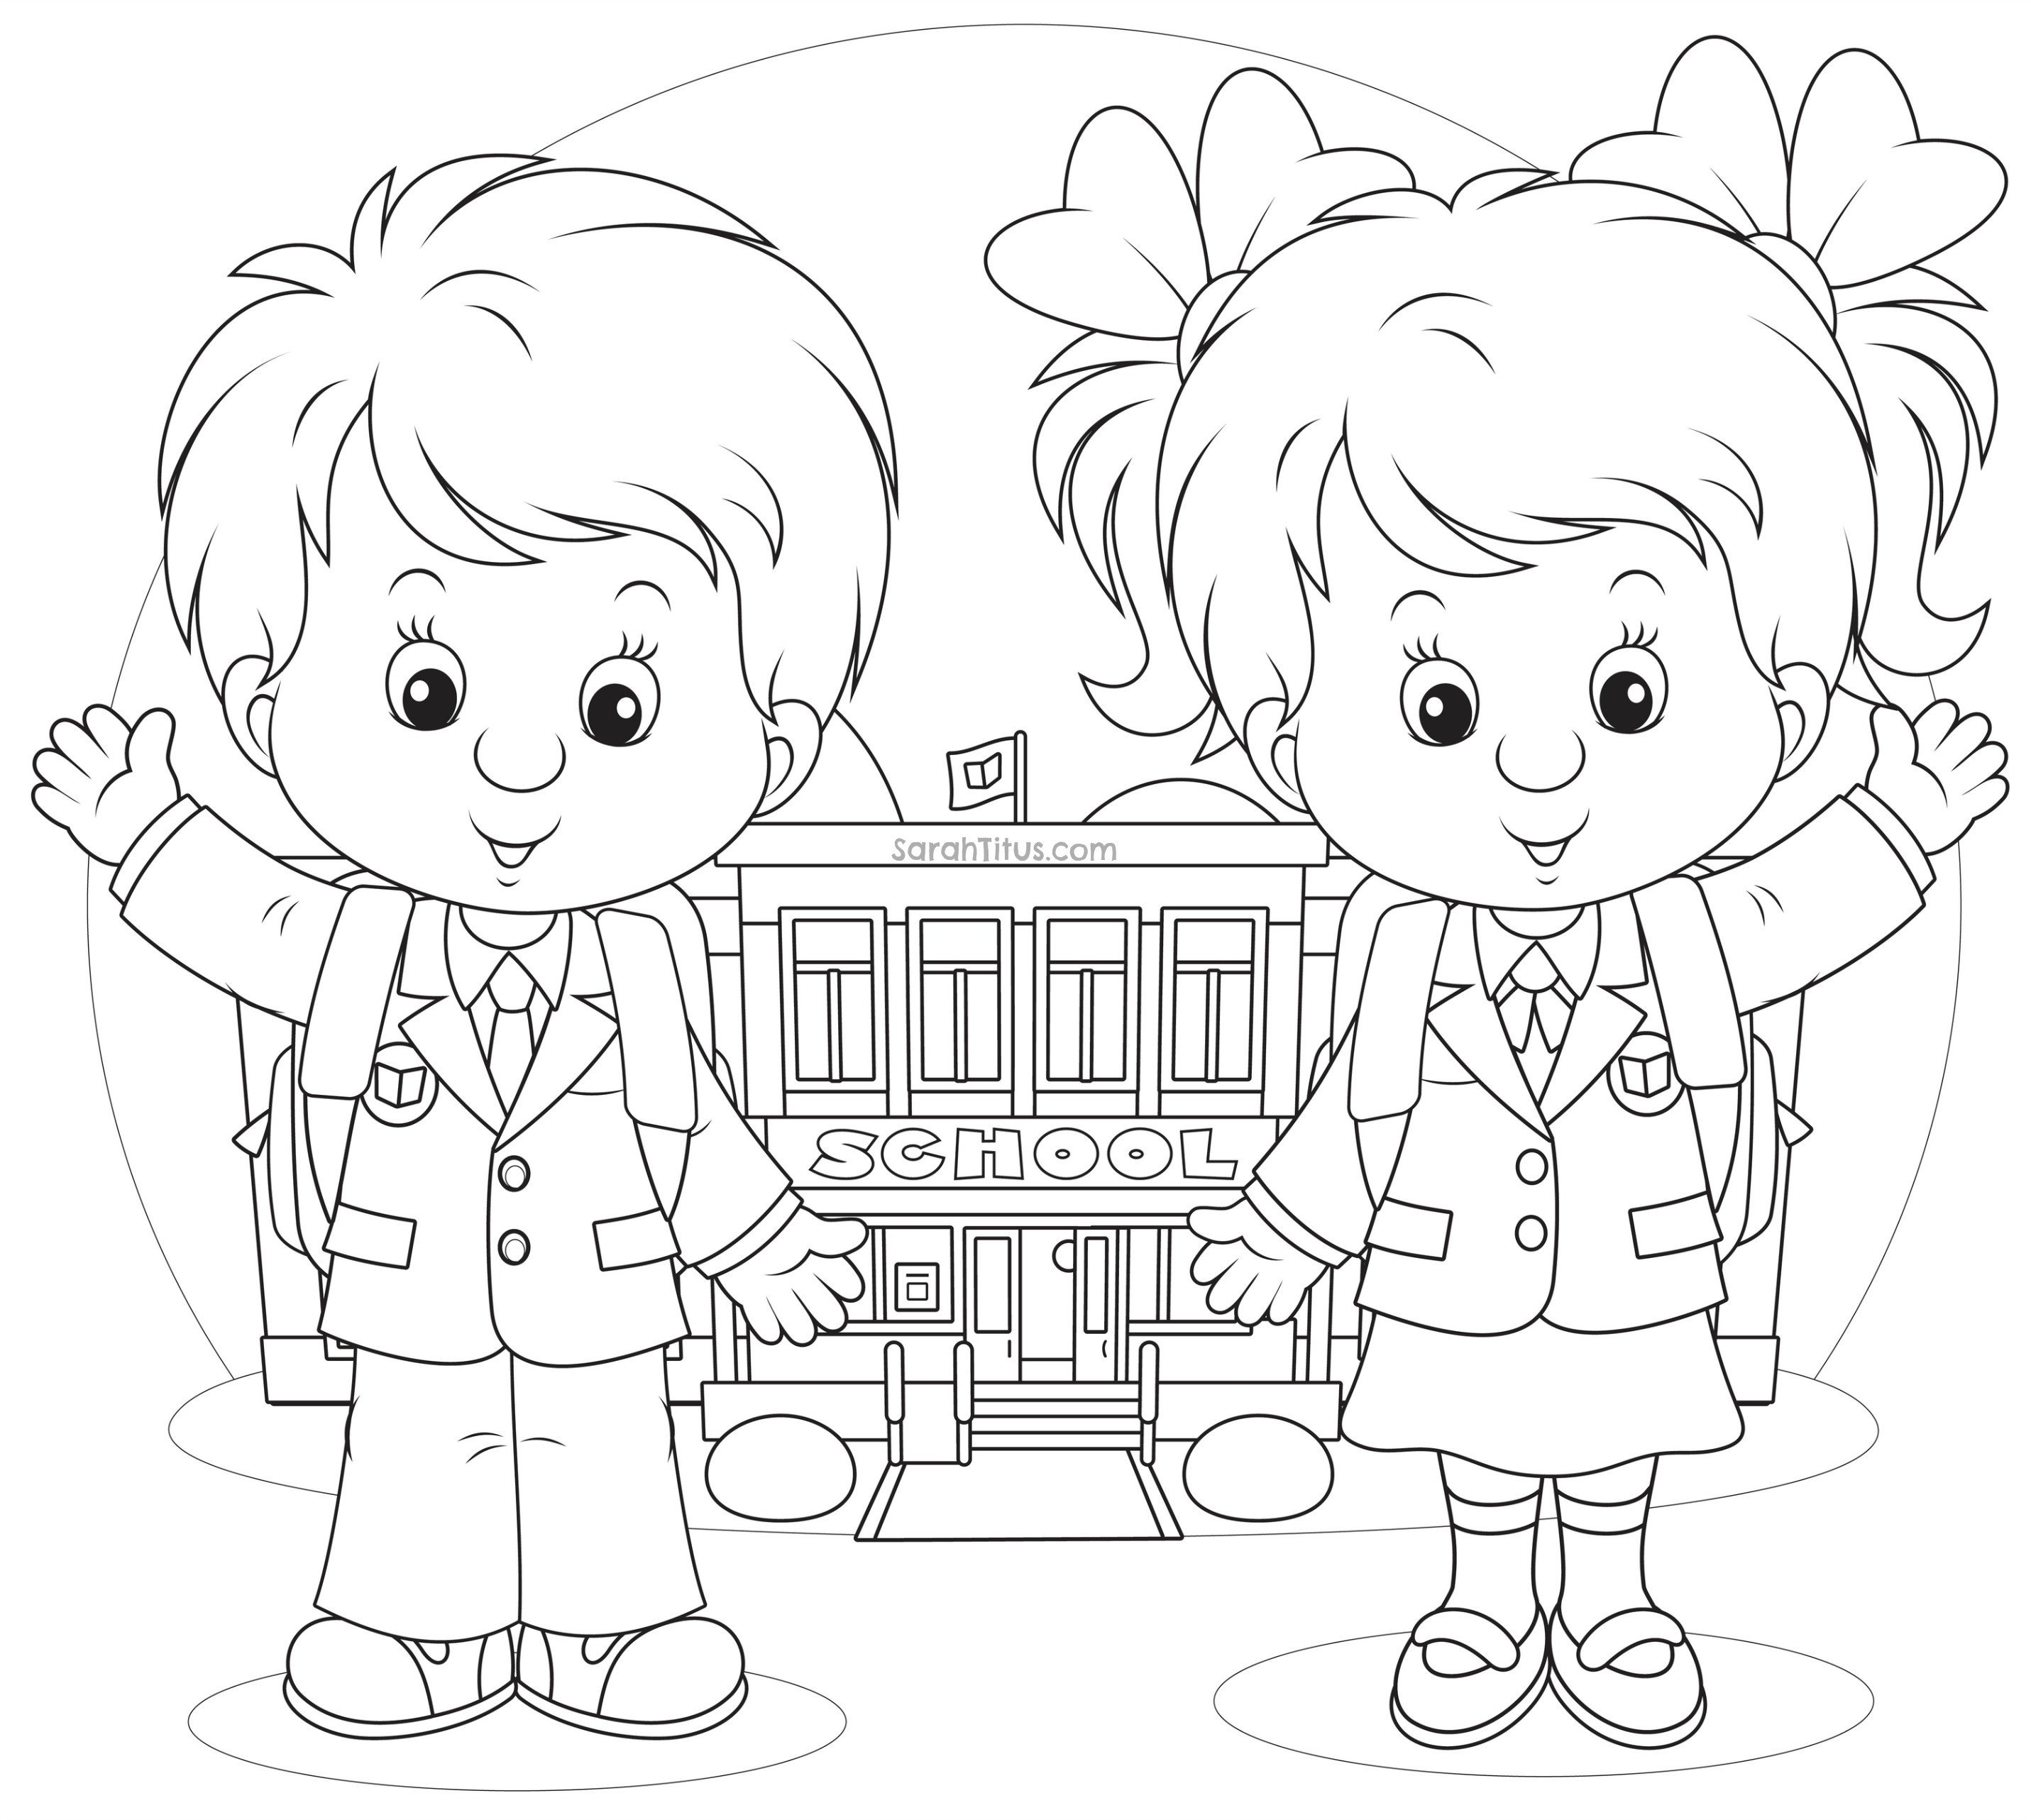 School Supplies Images to Color Back to School Coloring Pages Sarah Titus